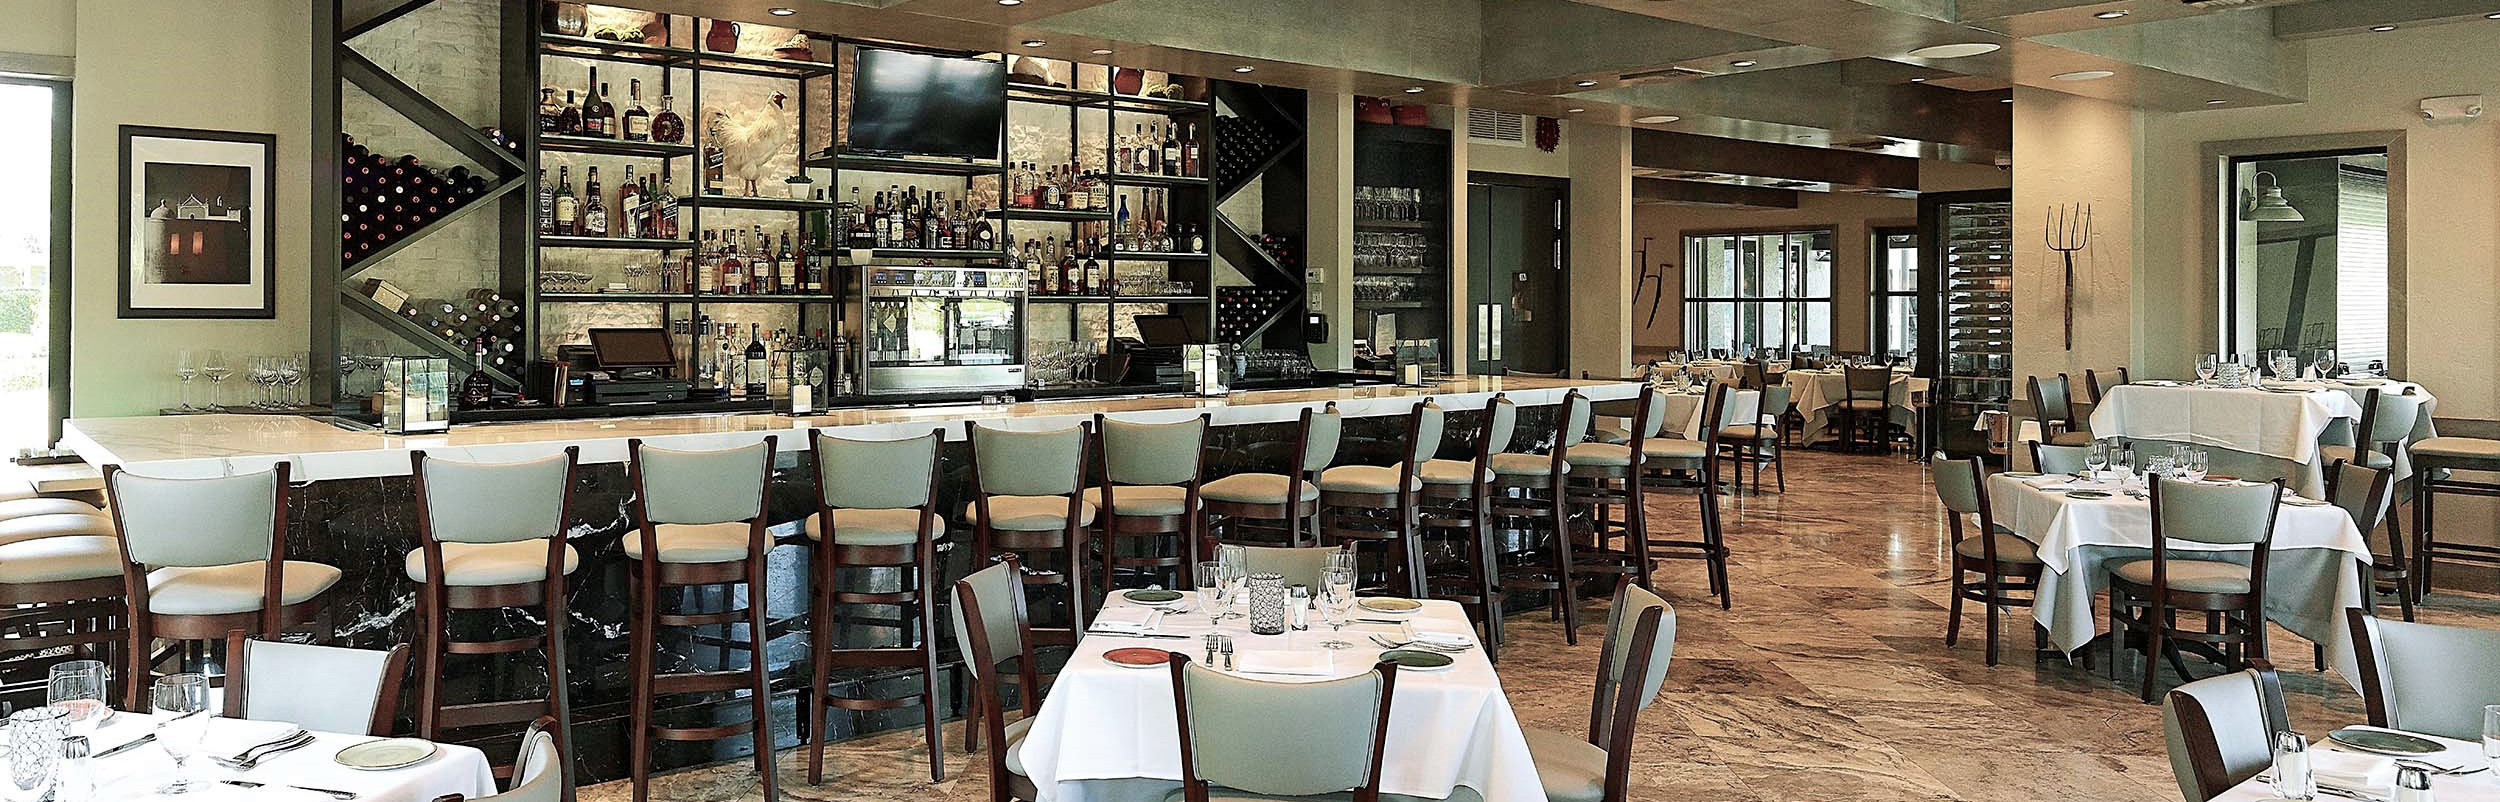 La Masseria Florida Authentic Italian Cuisine